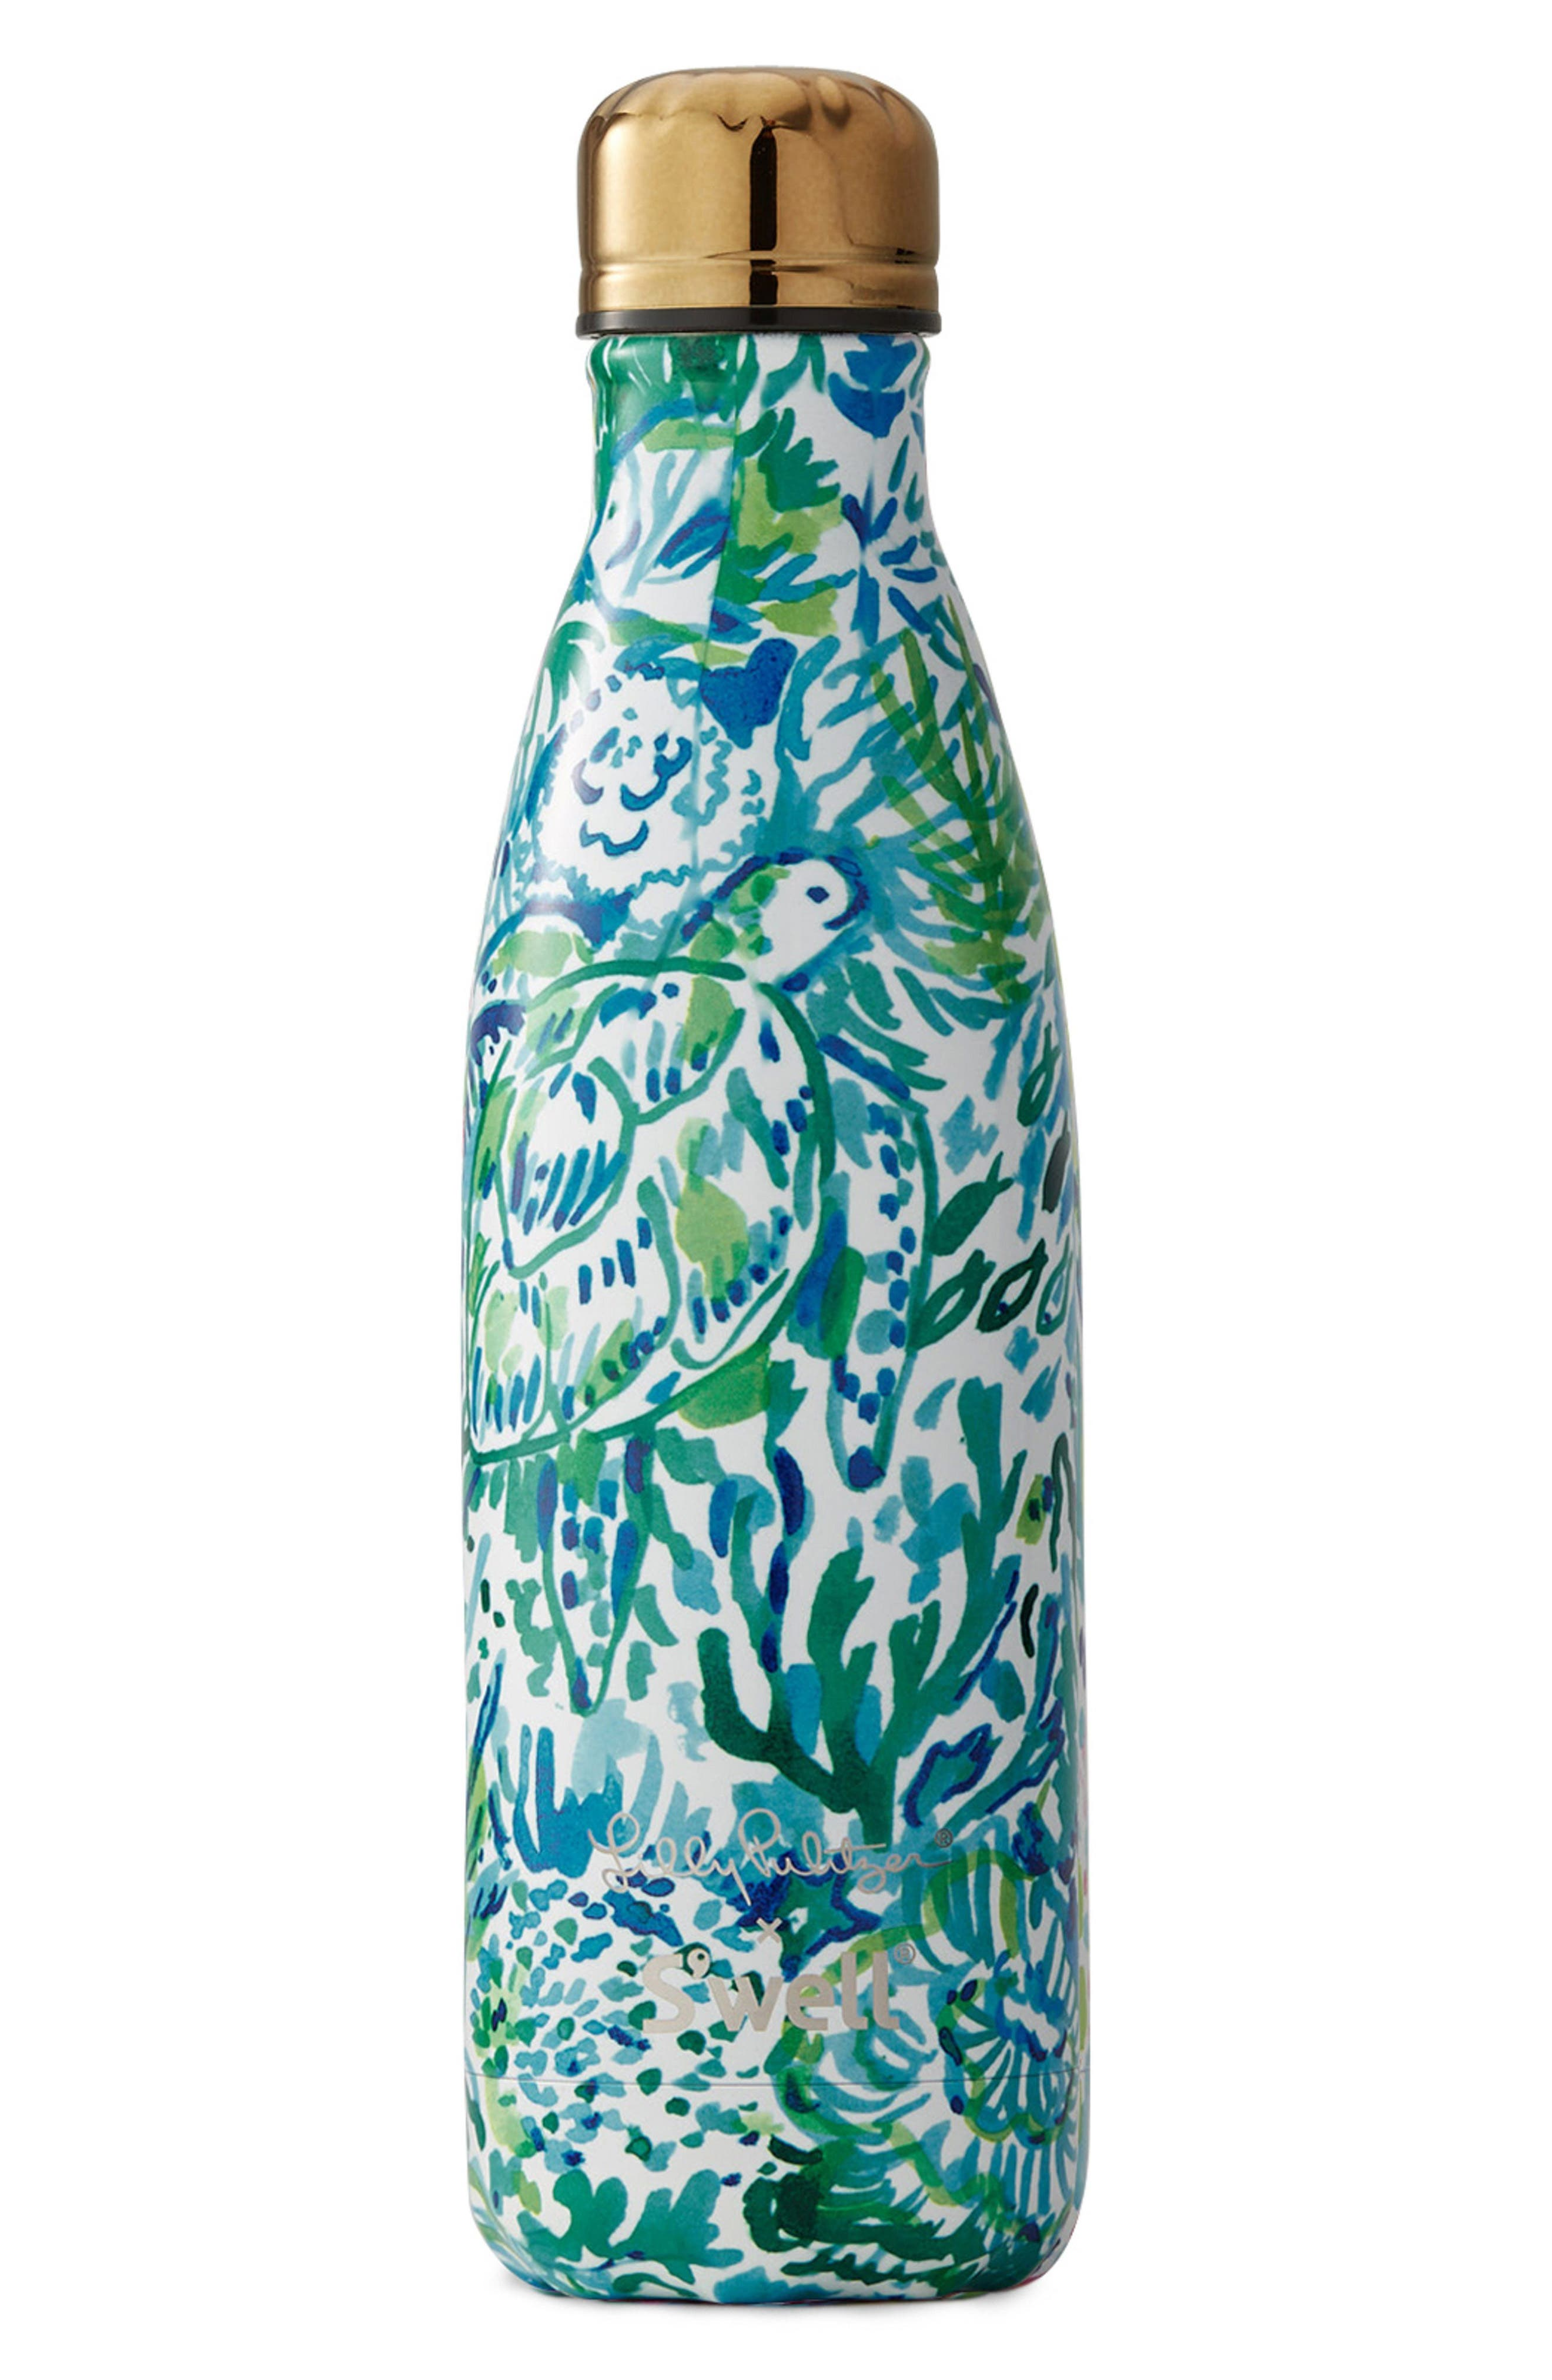 x Lilly Pulitzer<sup>®</sup> Race to the Wave 17-Ounce Stainless Steel Water Bottle,                             Main thumbnail 1, color,                             100